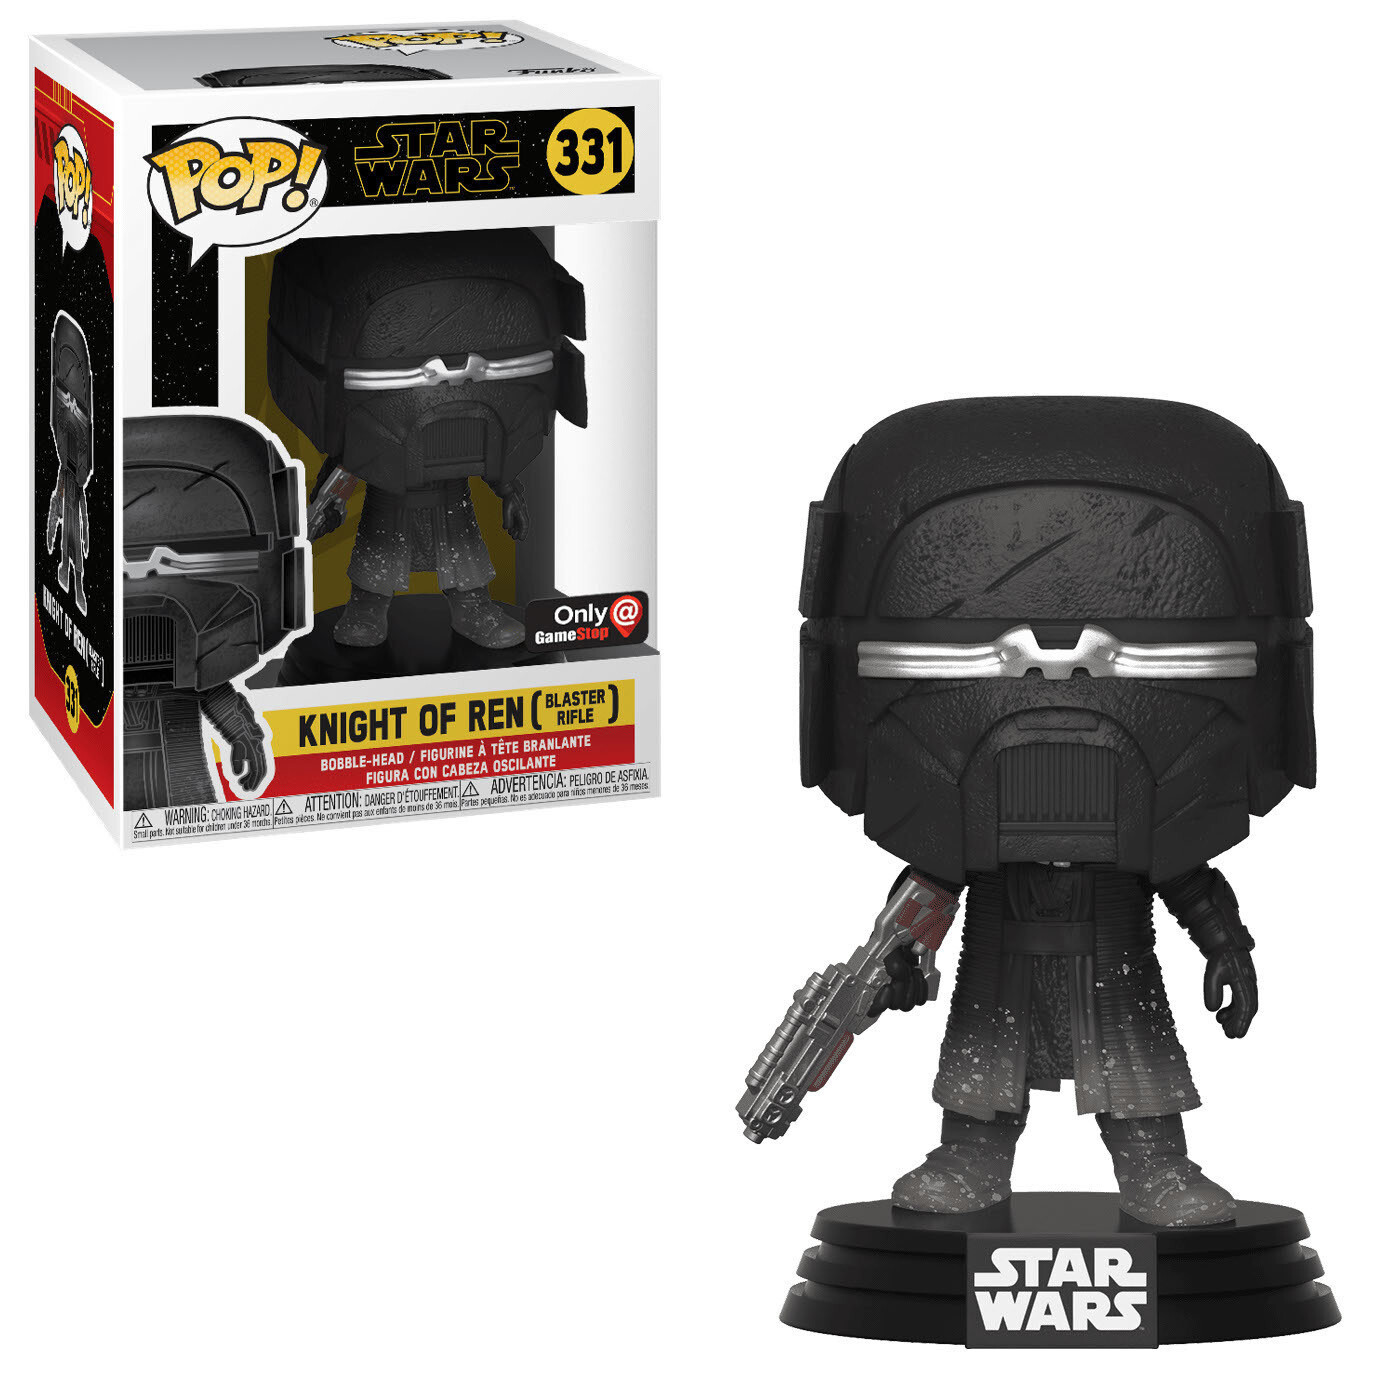 Knight Of Ren Blaster